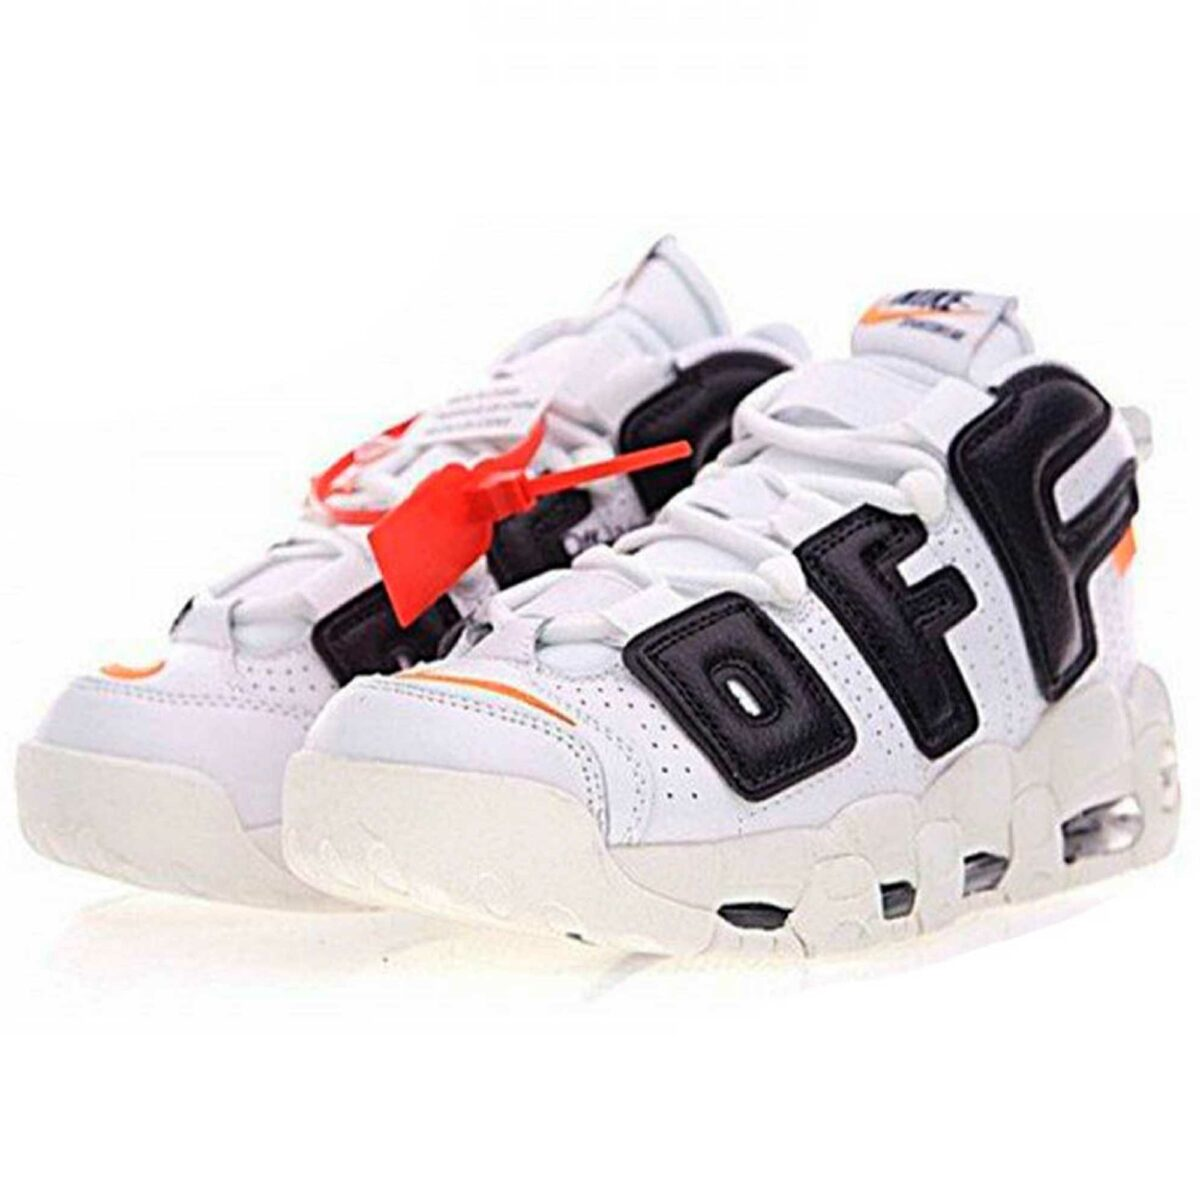 nike air more uptempo x off-white купить